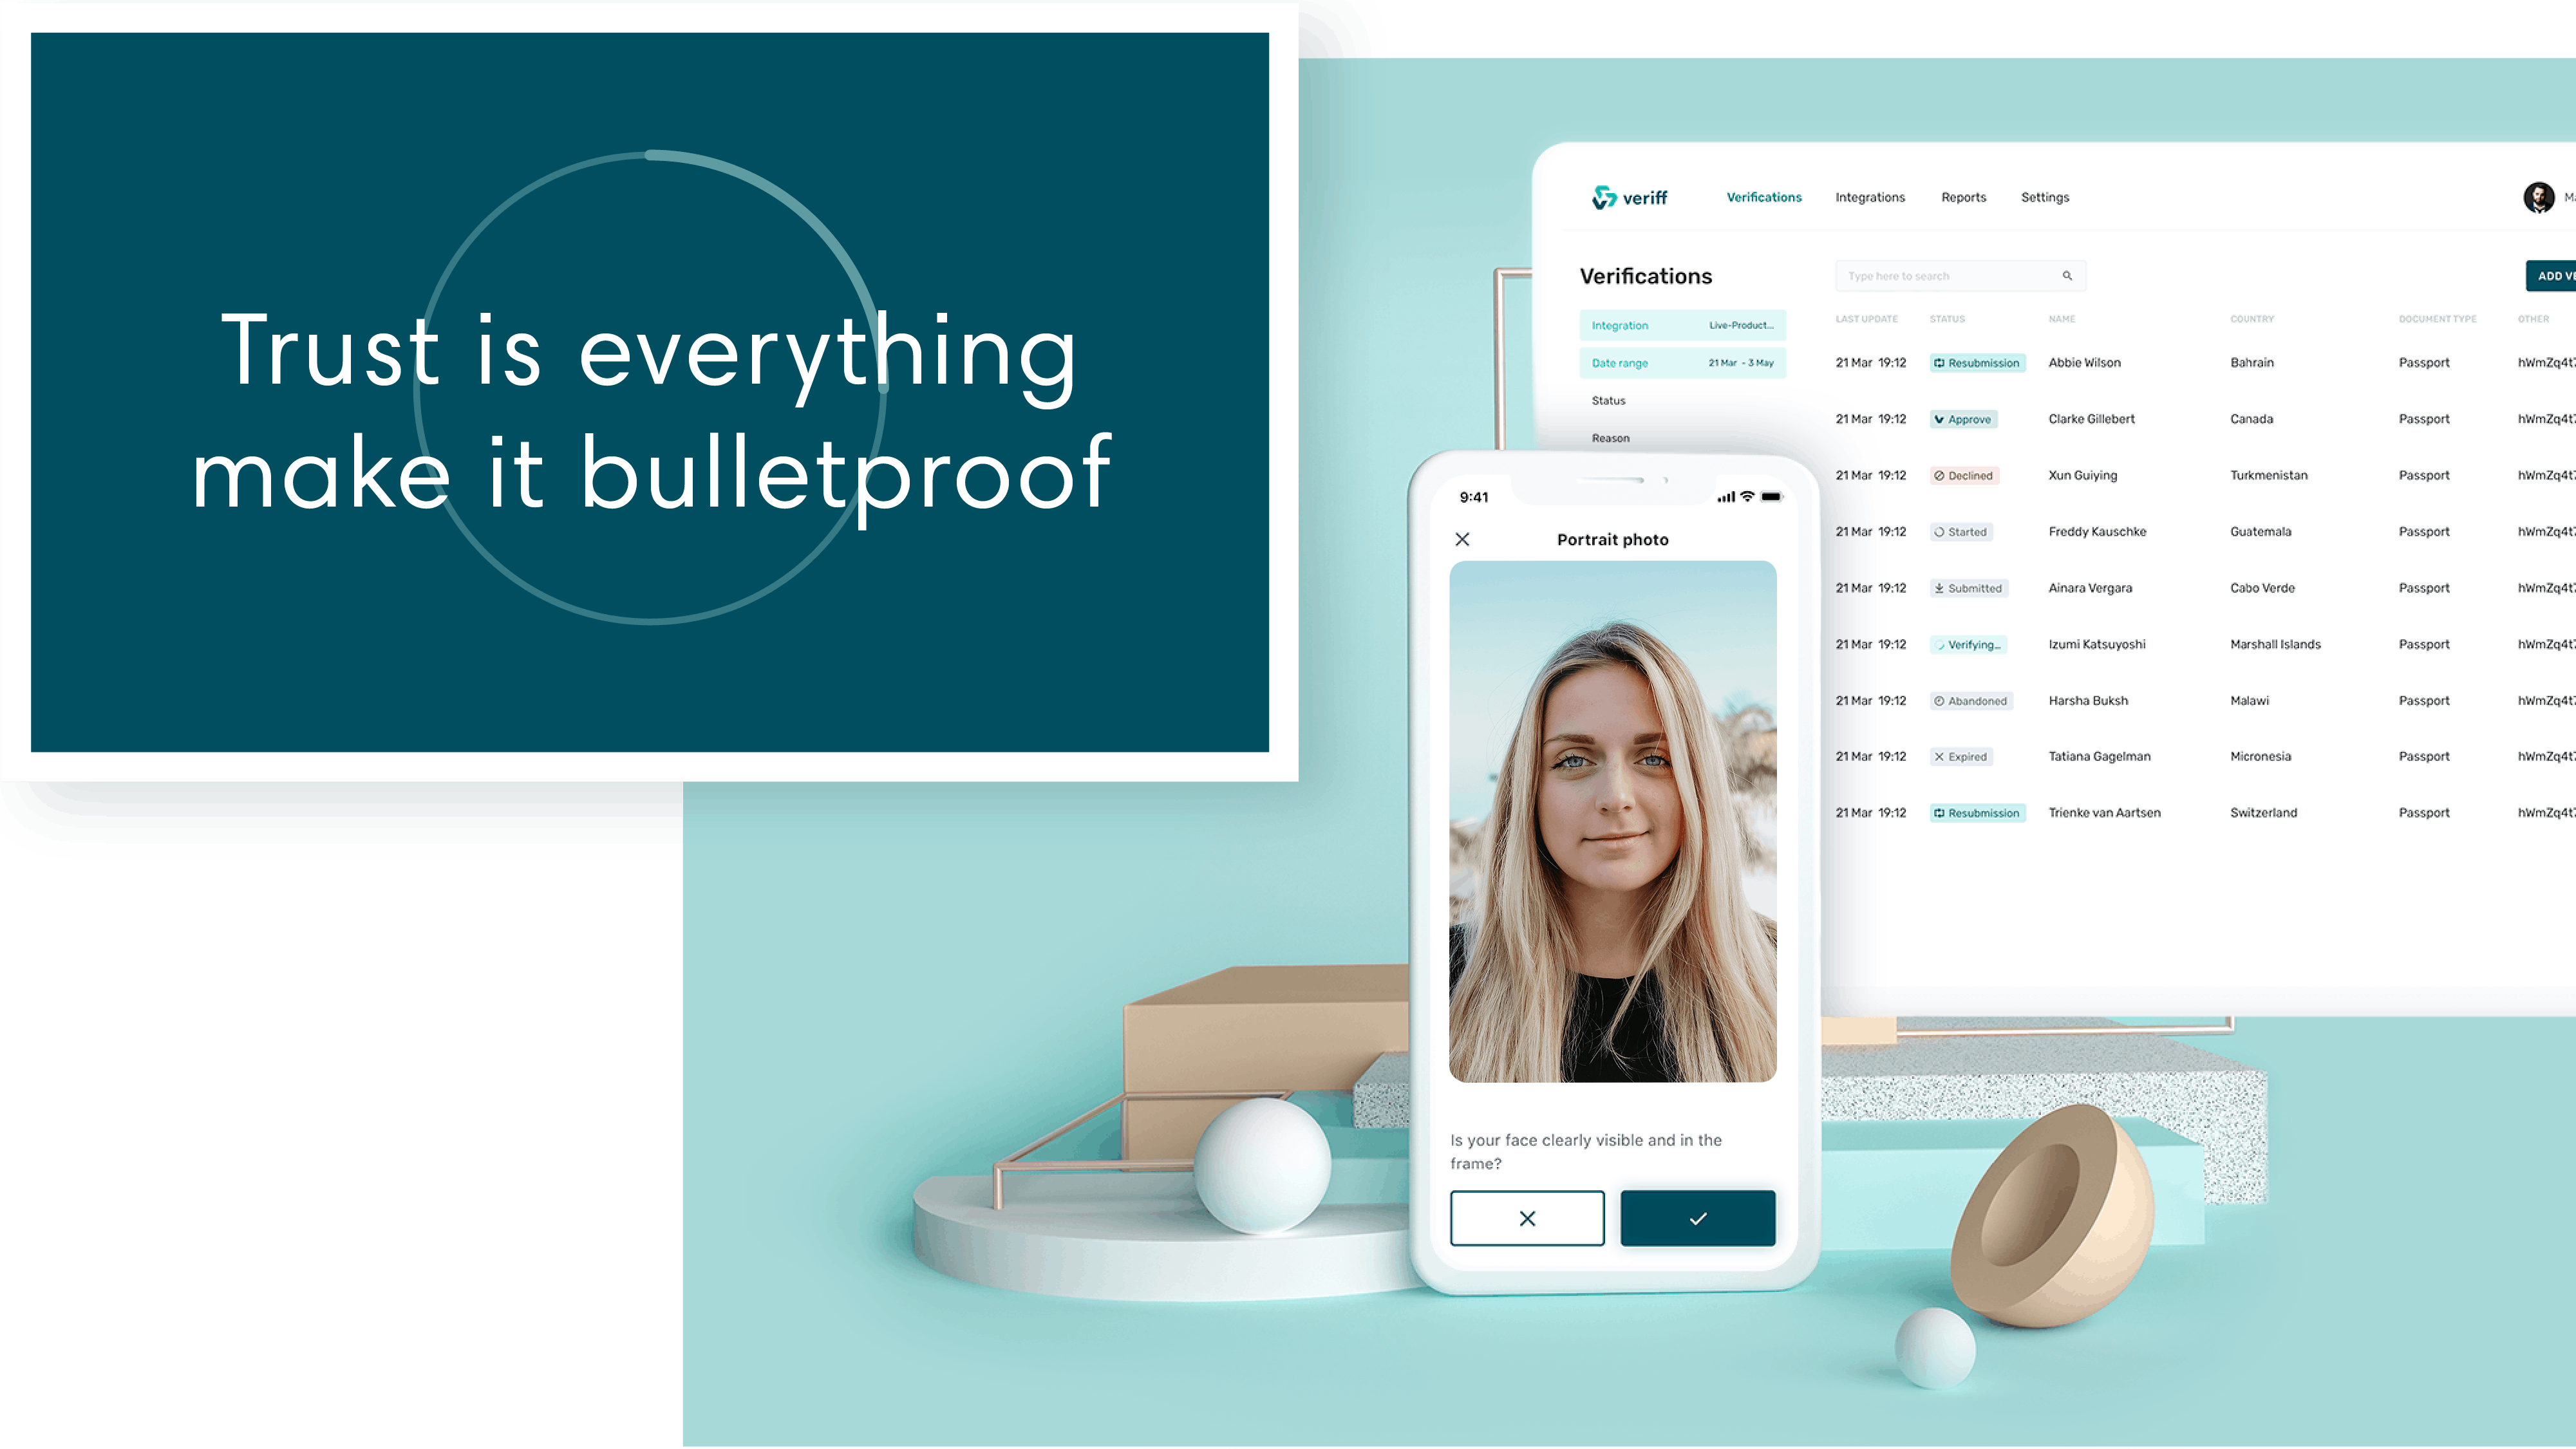 Trust is everything, make it bulletproof, a statement Veriff stands for